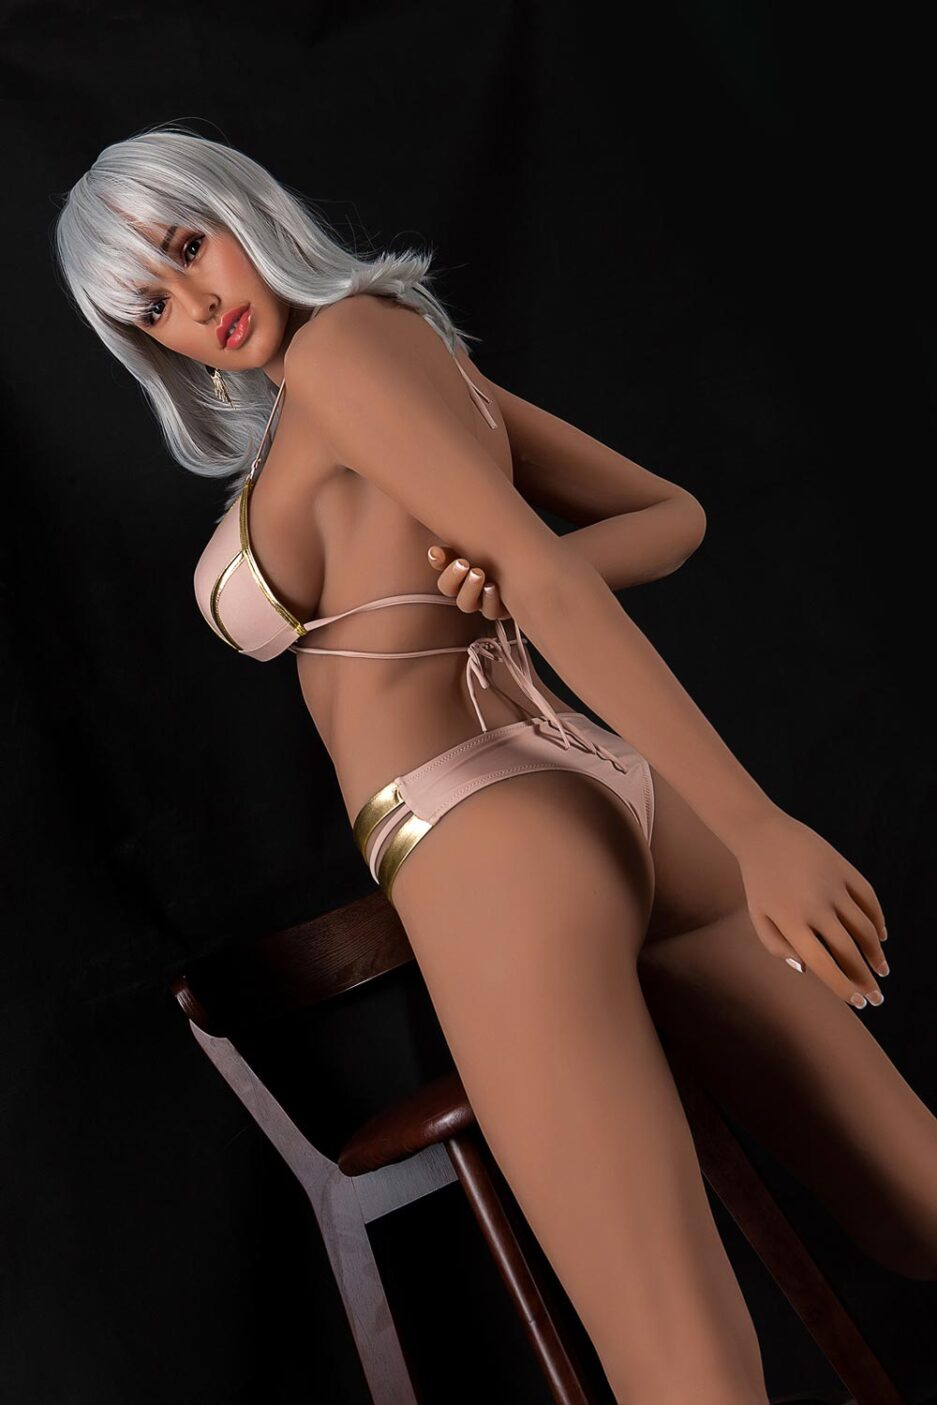 Silicone sex doll with arm in hand